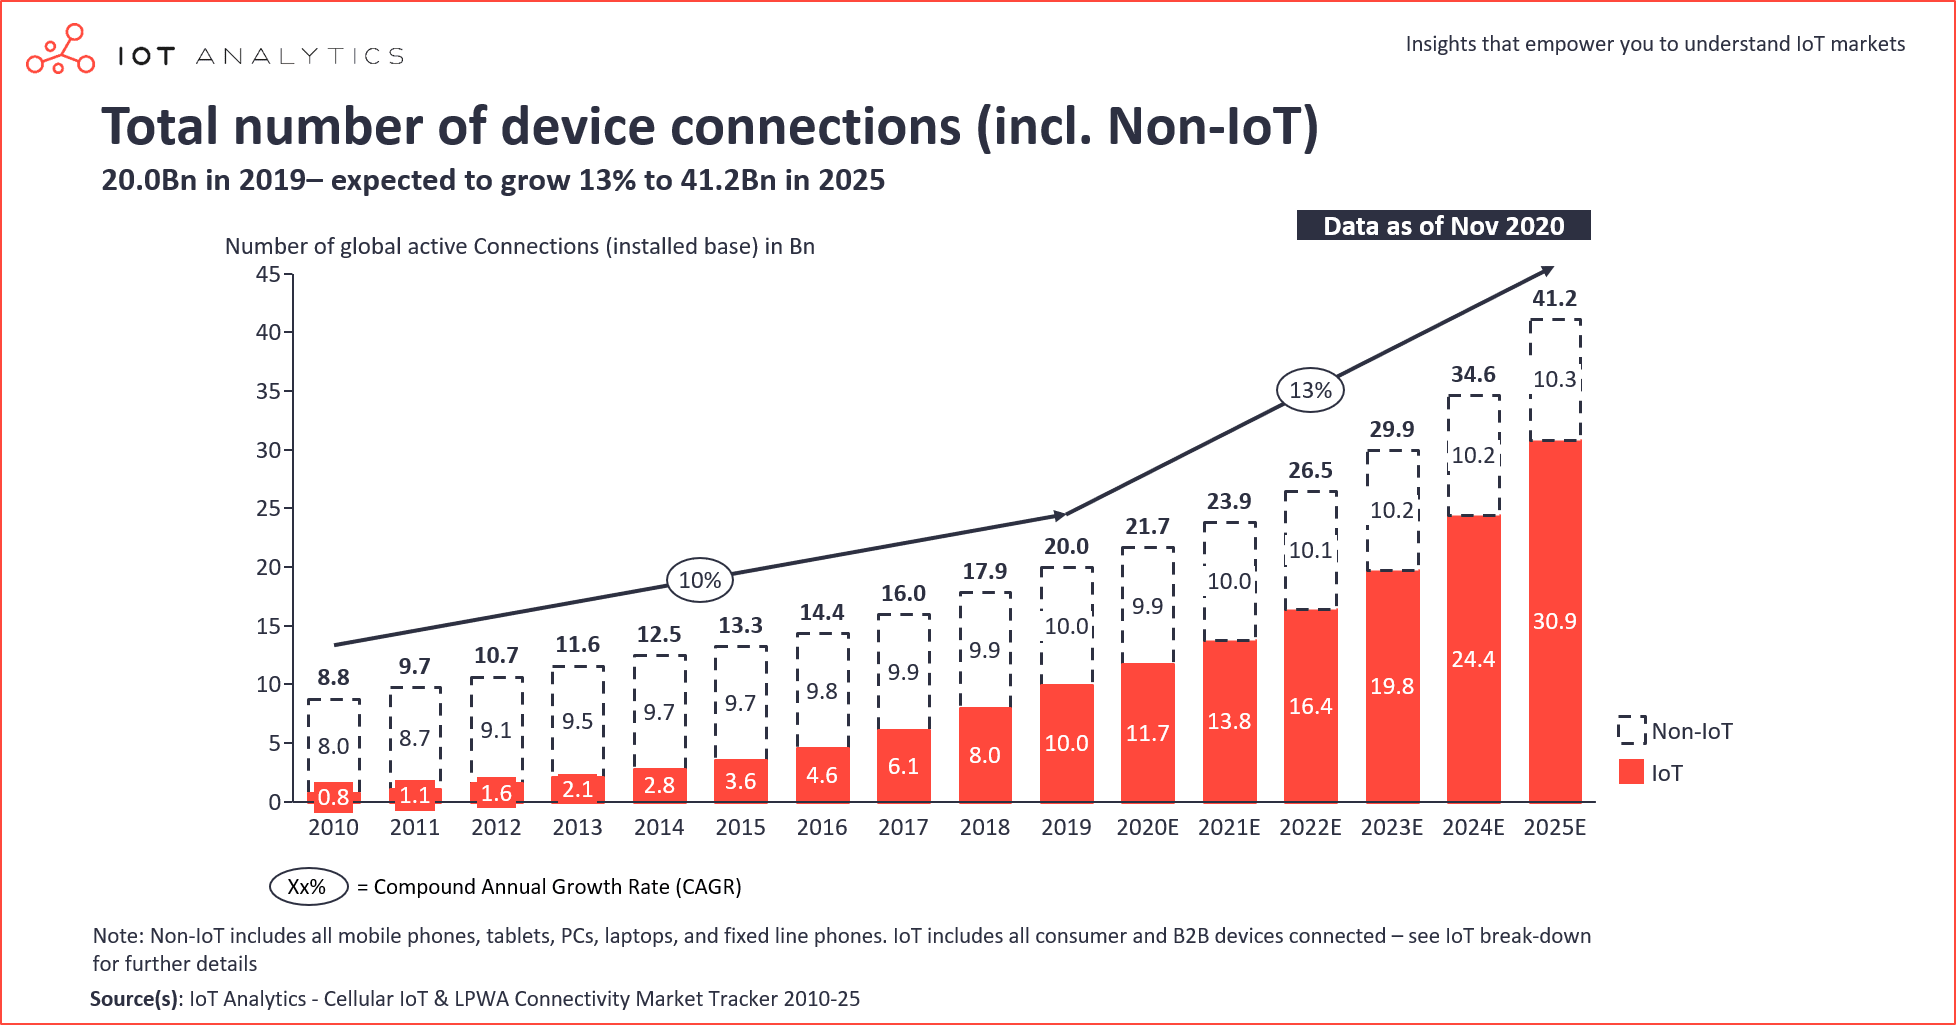 IoT Device Connections Expected Growth